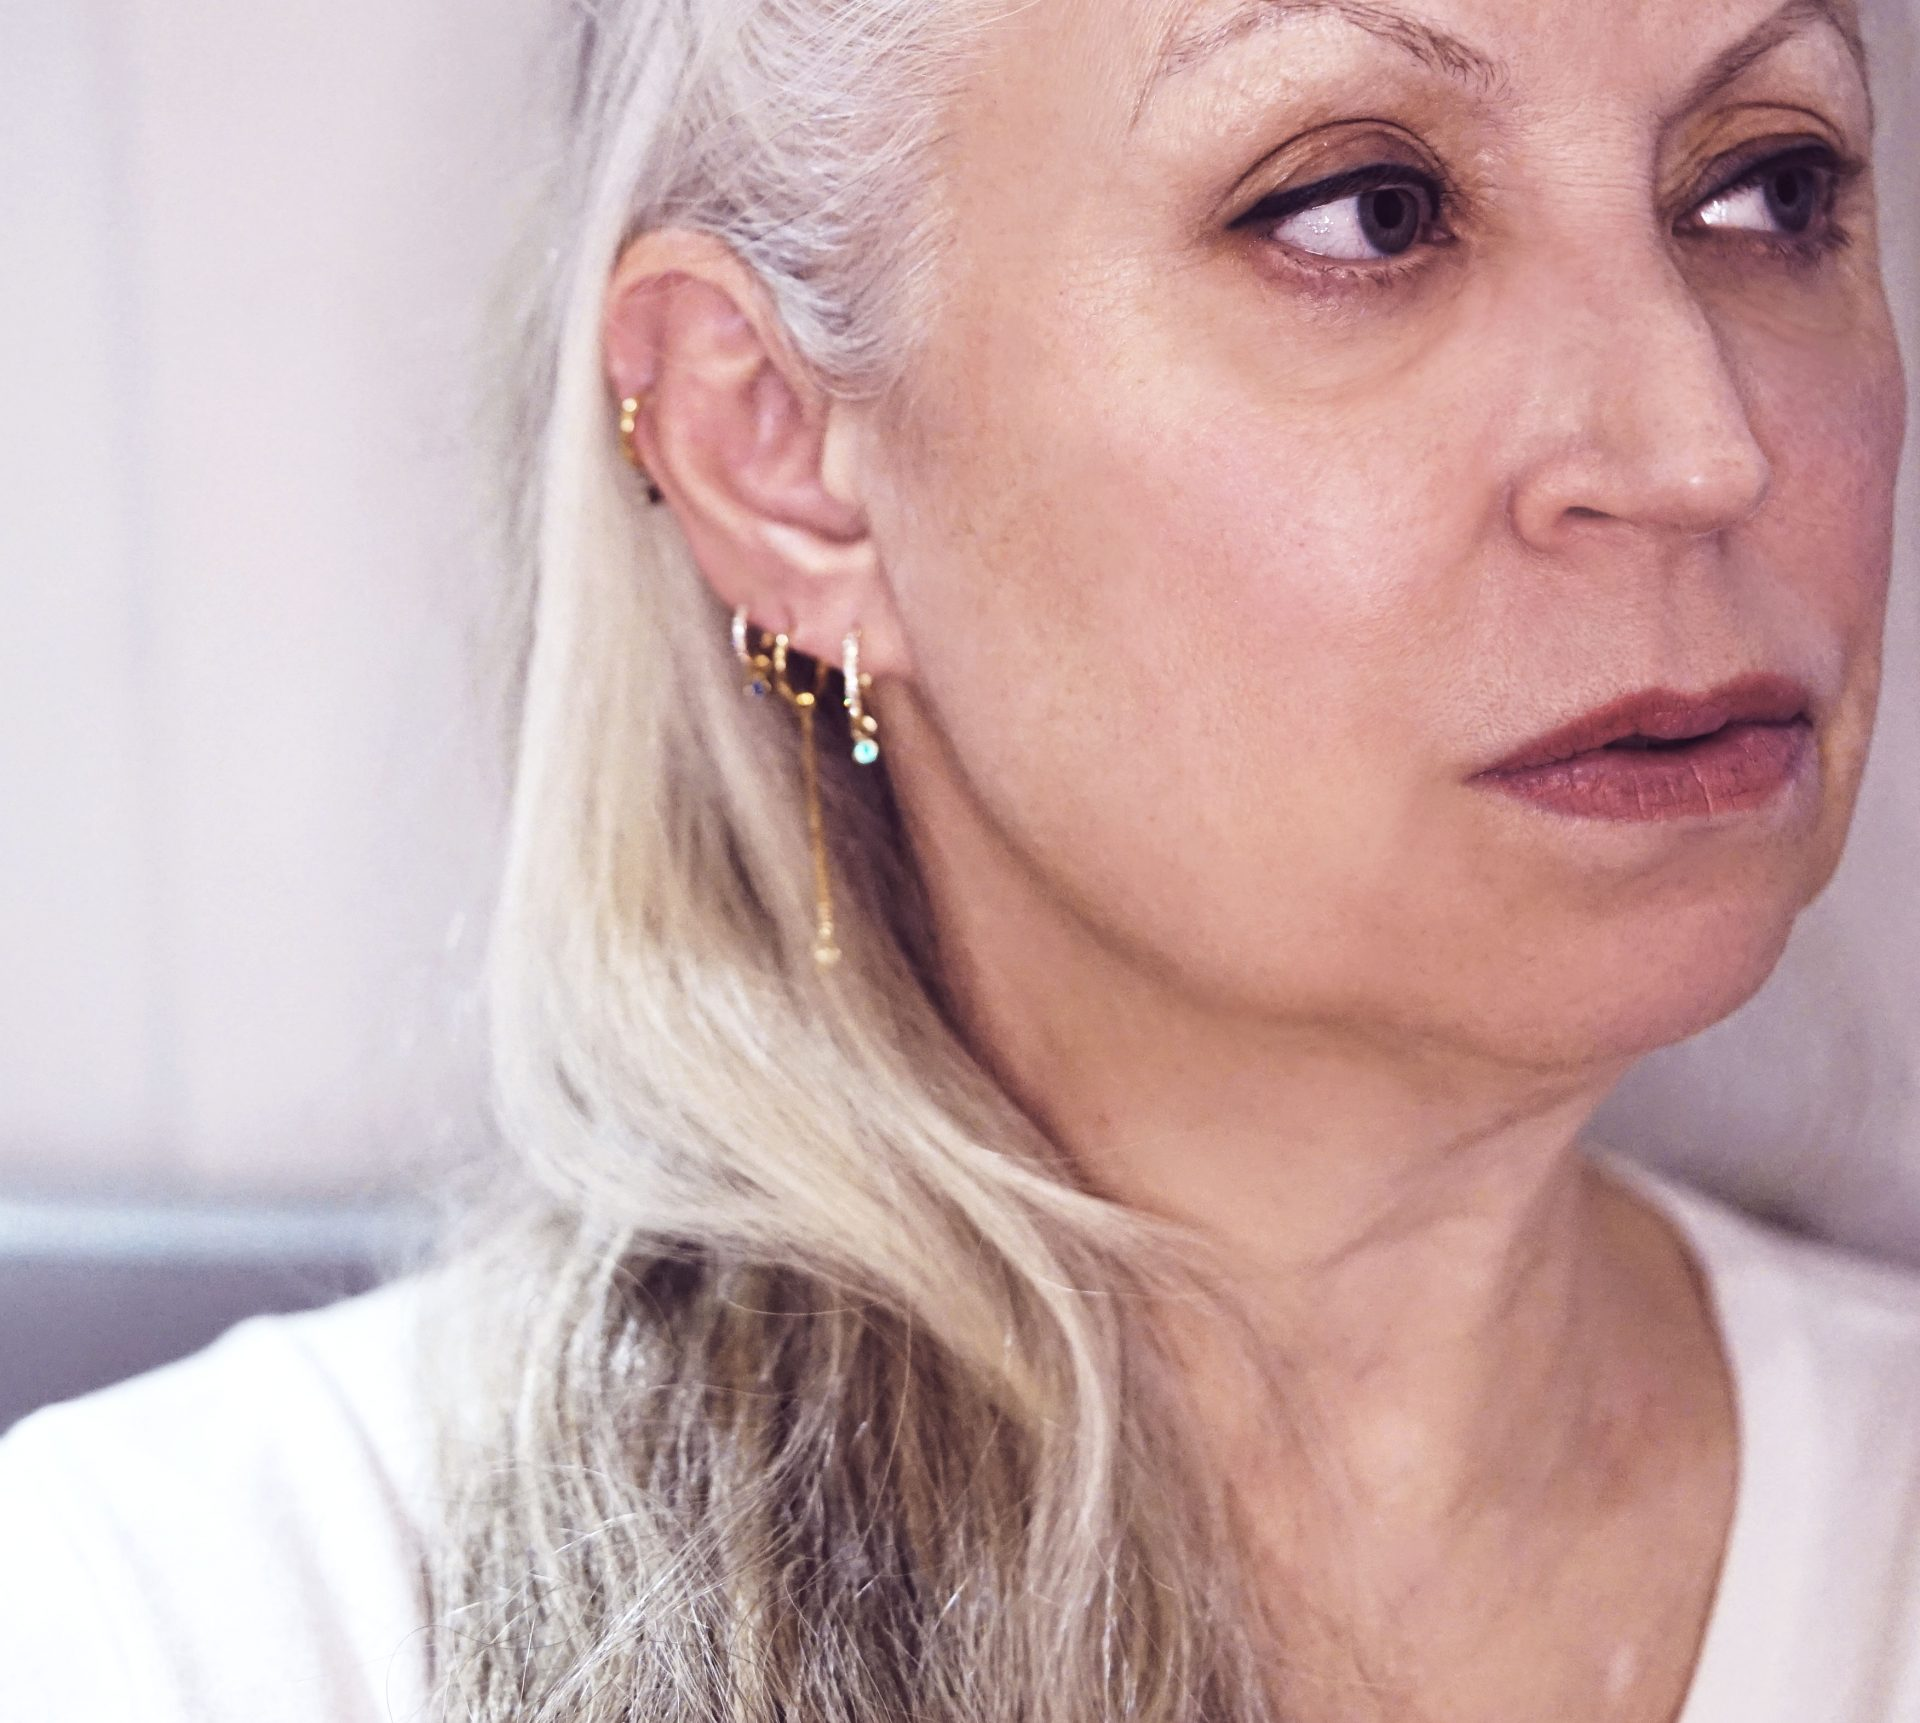 ARE YOU TOO OLD TO WEAR MULTIPLE EAR PIERCINGS?